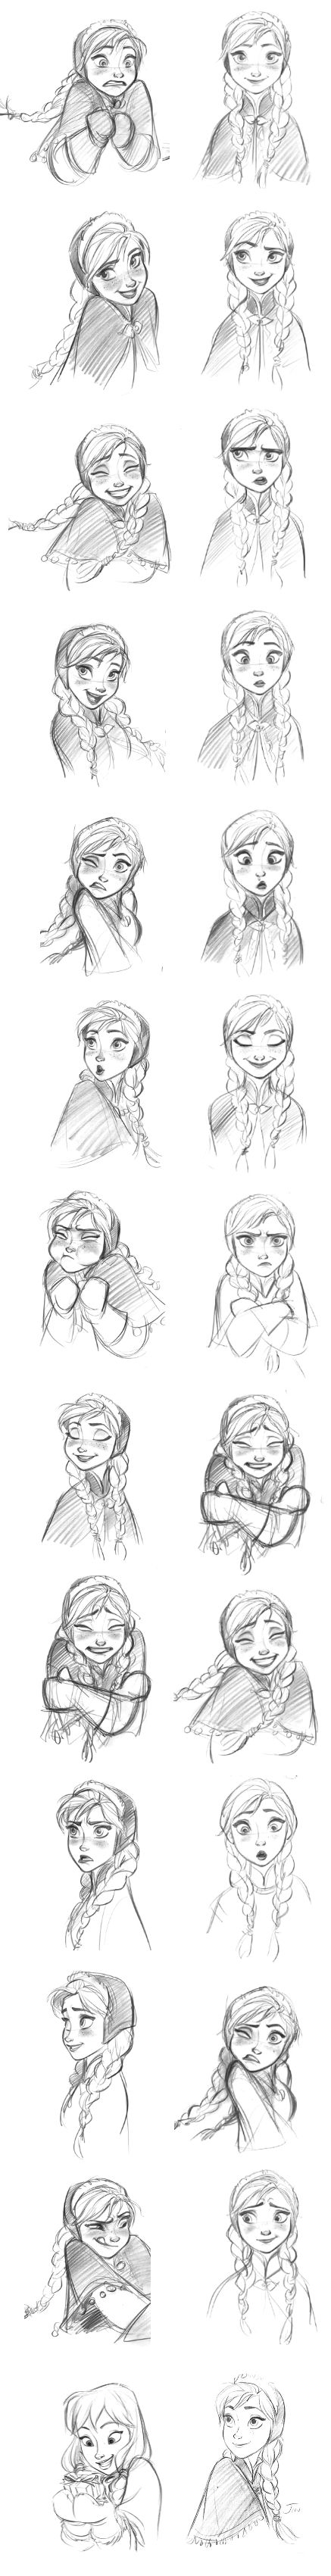 """""""Anna (Frozen)"""" Expressions by Jin Kim* 